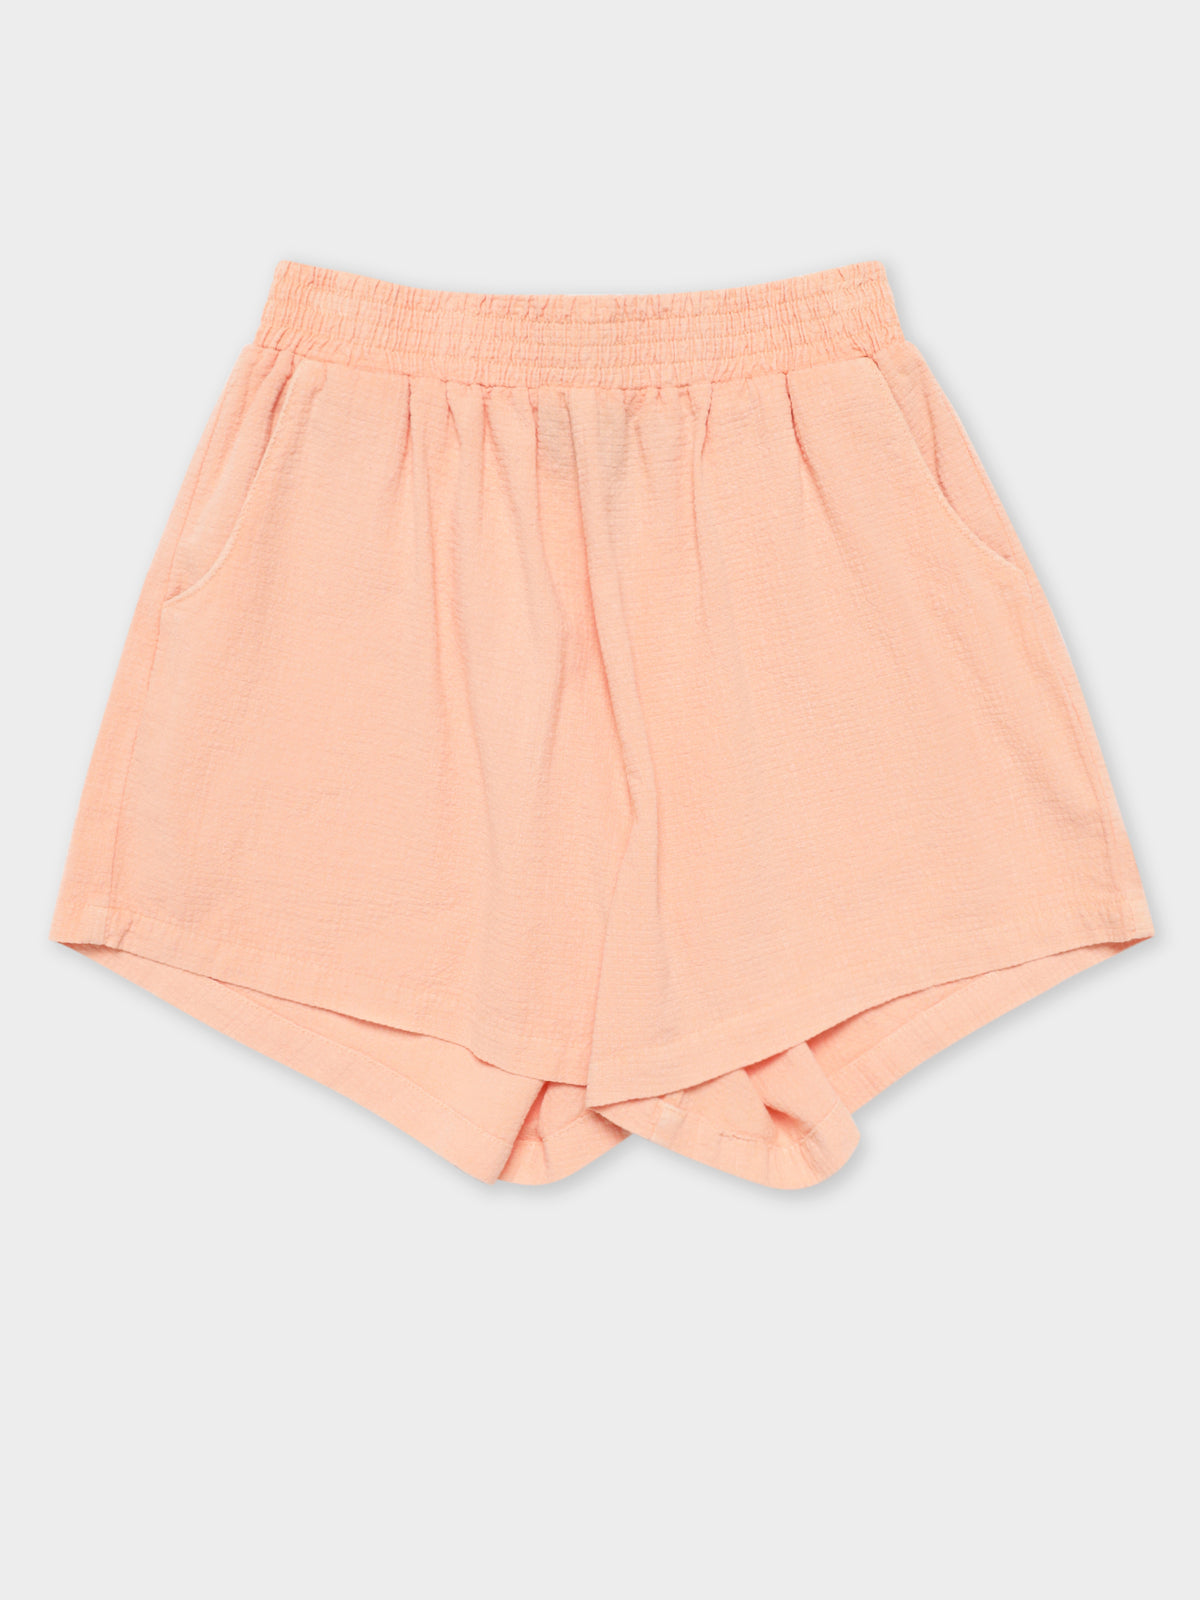 Vermont HW Shorts in Peach